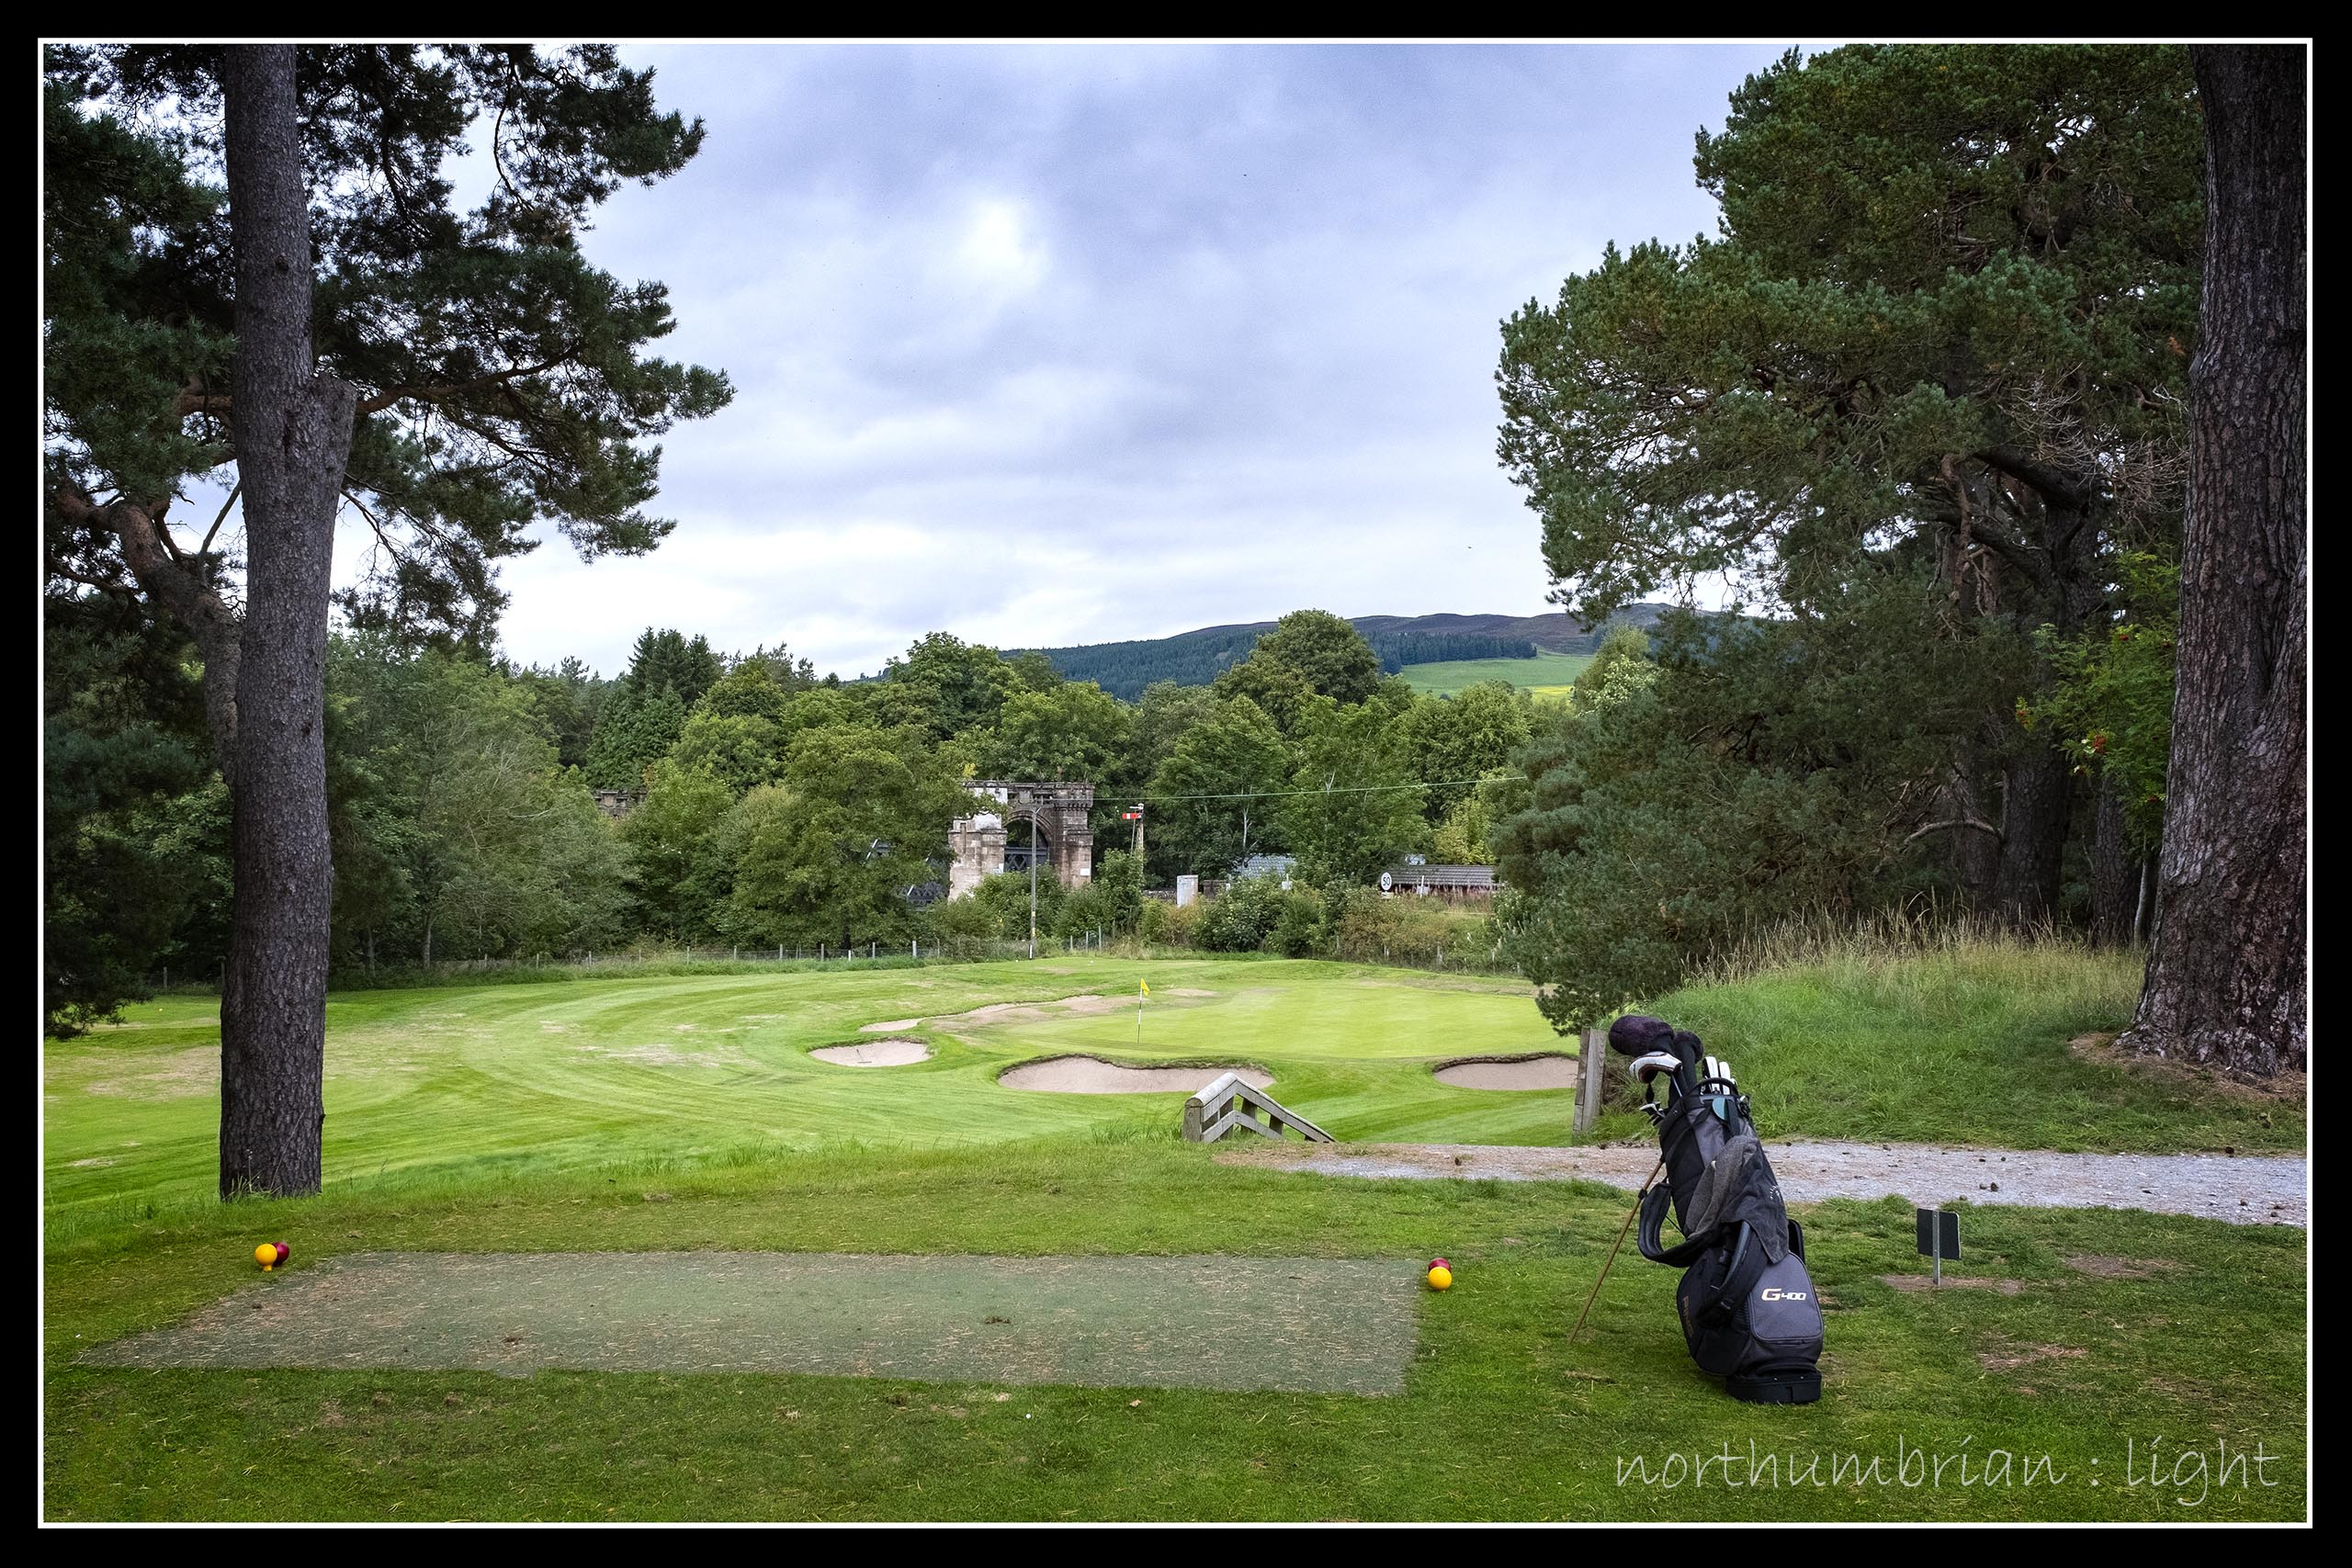 ... short par 3, Blair Atholl, with the castellated railway bridge over the River Garry in the background.